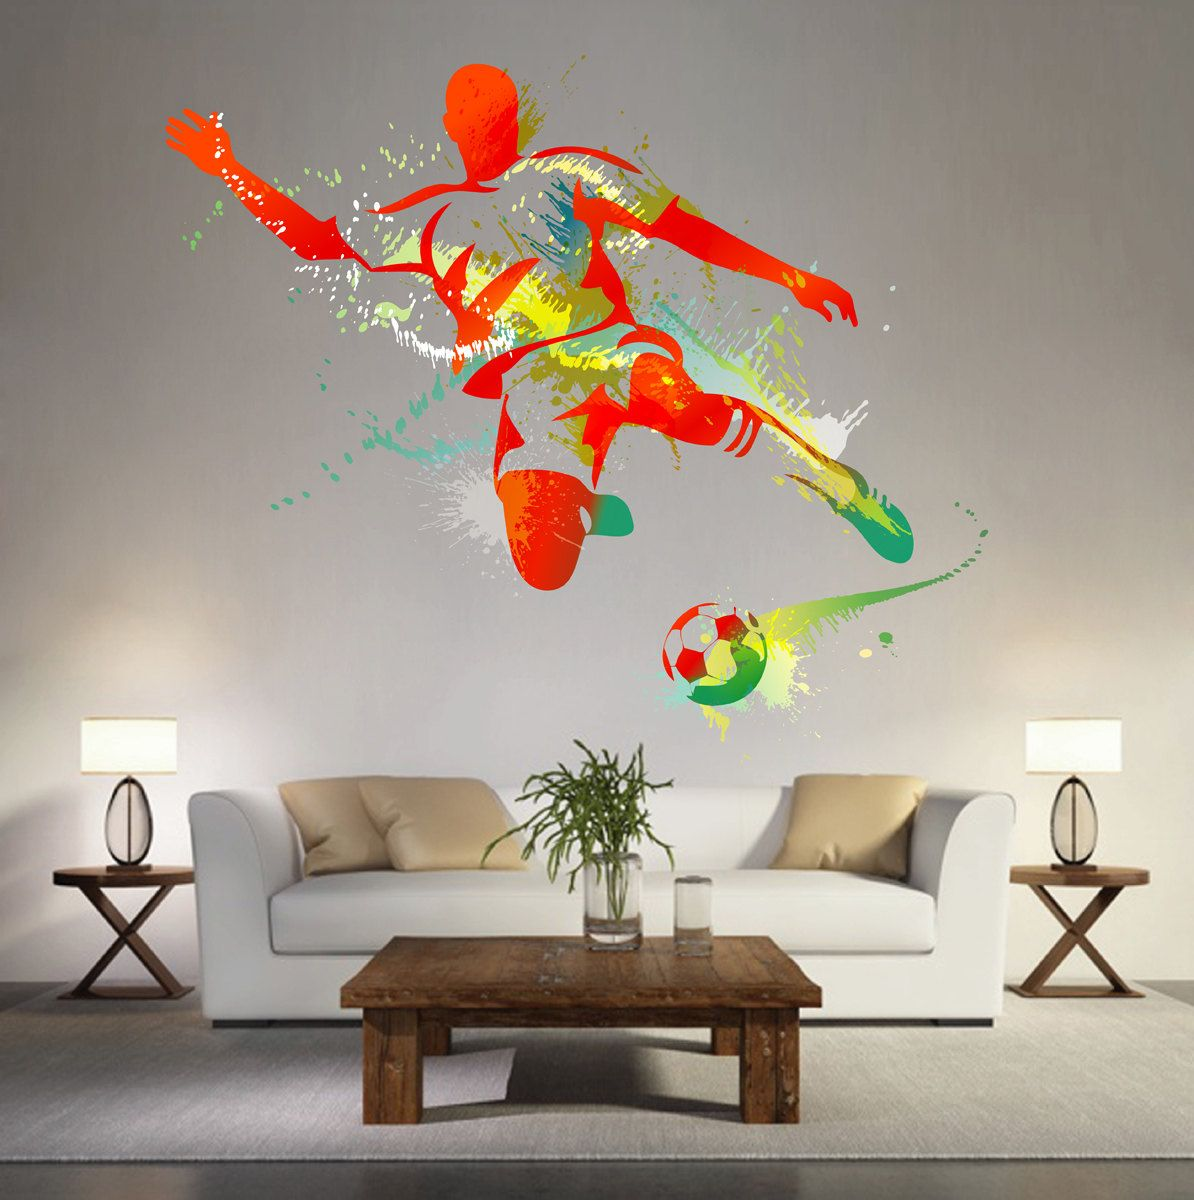 Soccer Player Wall Decals Football Player Wall Decals Soccer Wall Decals  European Football Wall Decals Kcik119